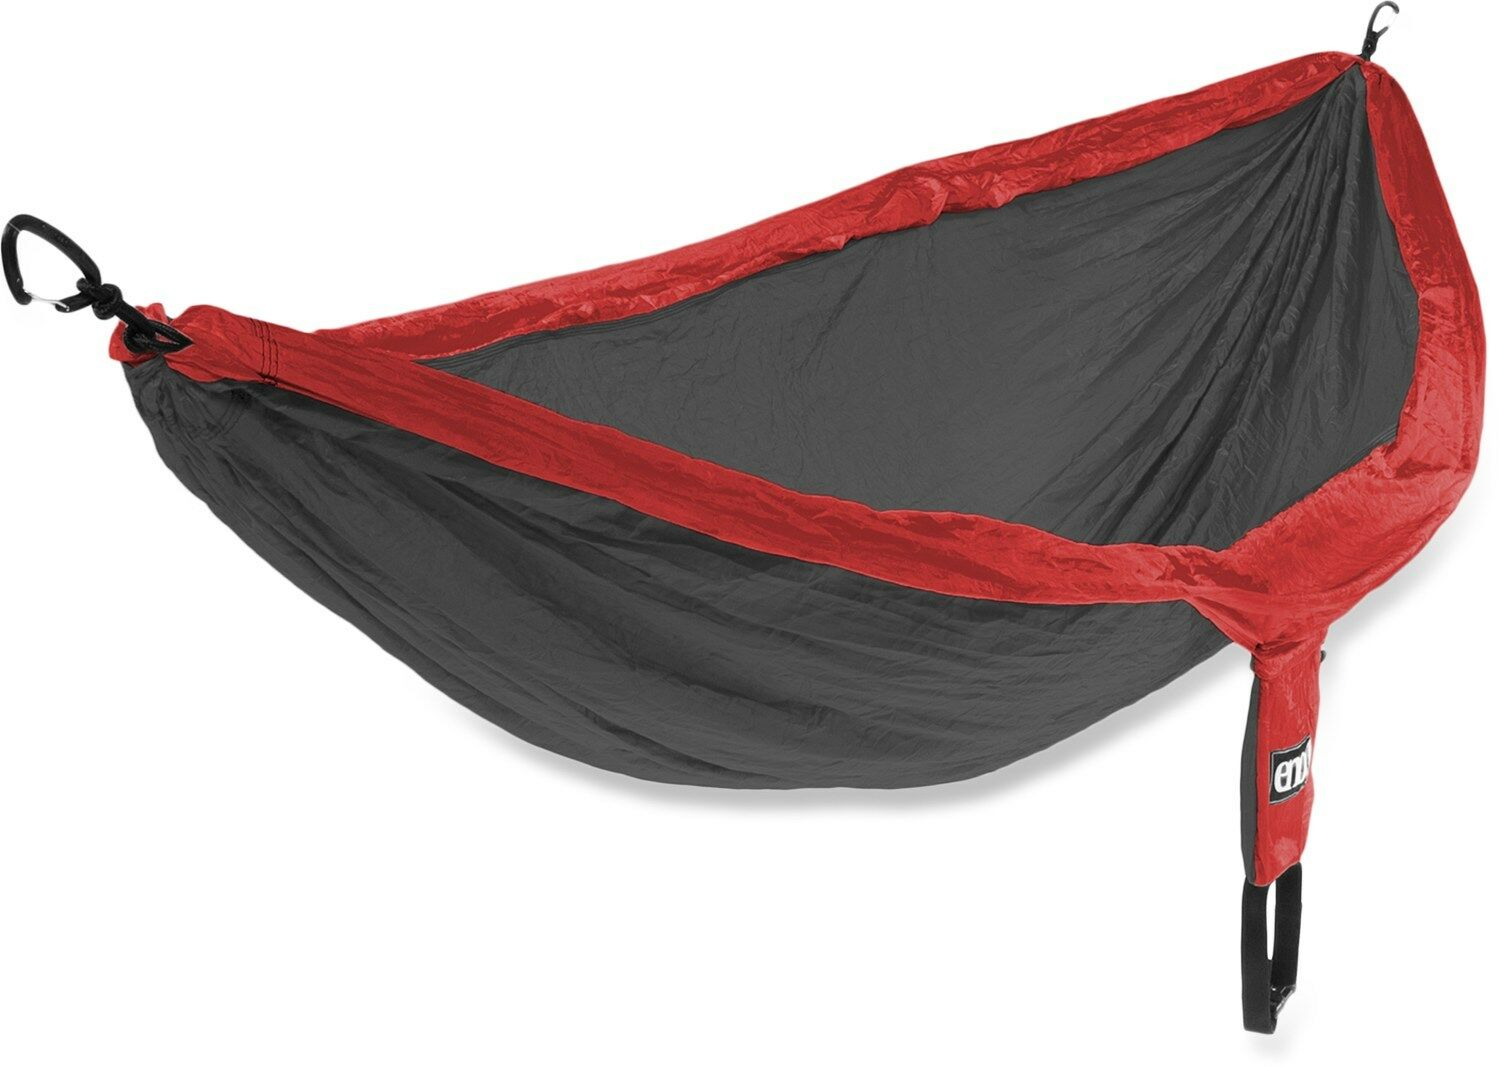 Eno Eno Eno Eagle Nest Outfitters Doublenest parachute hammock rouge/anthracite 0e572c